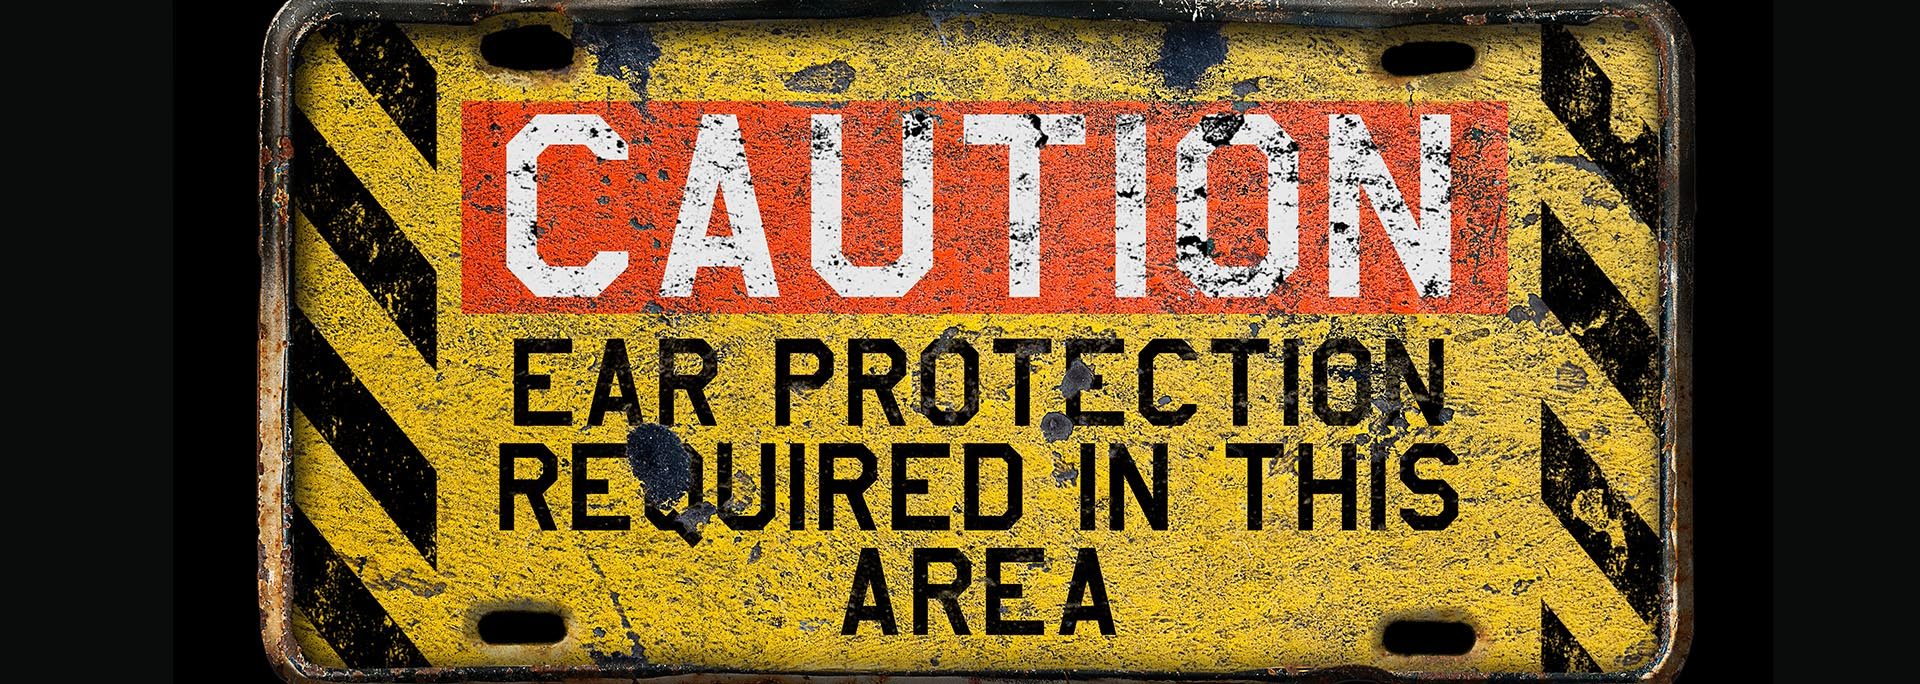 Hearing Protection Warning